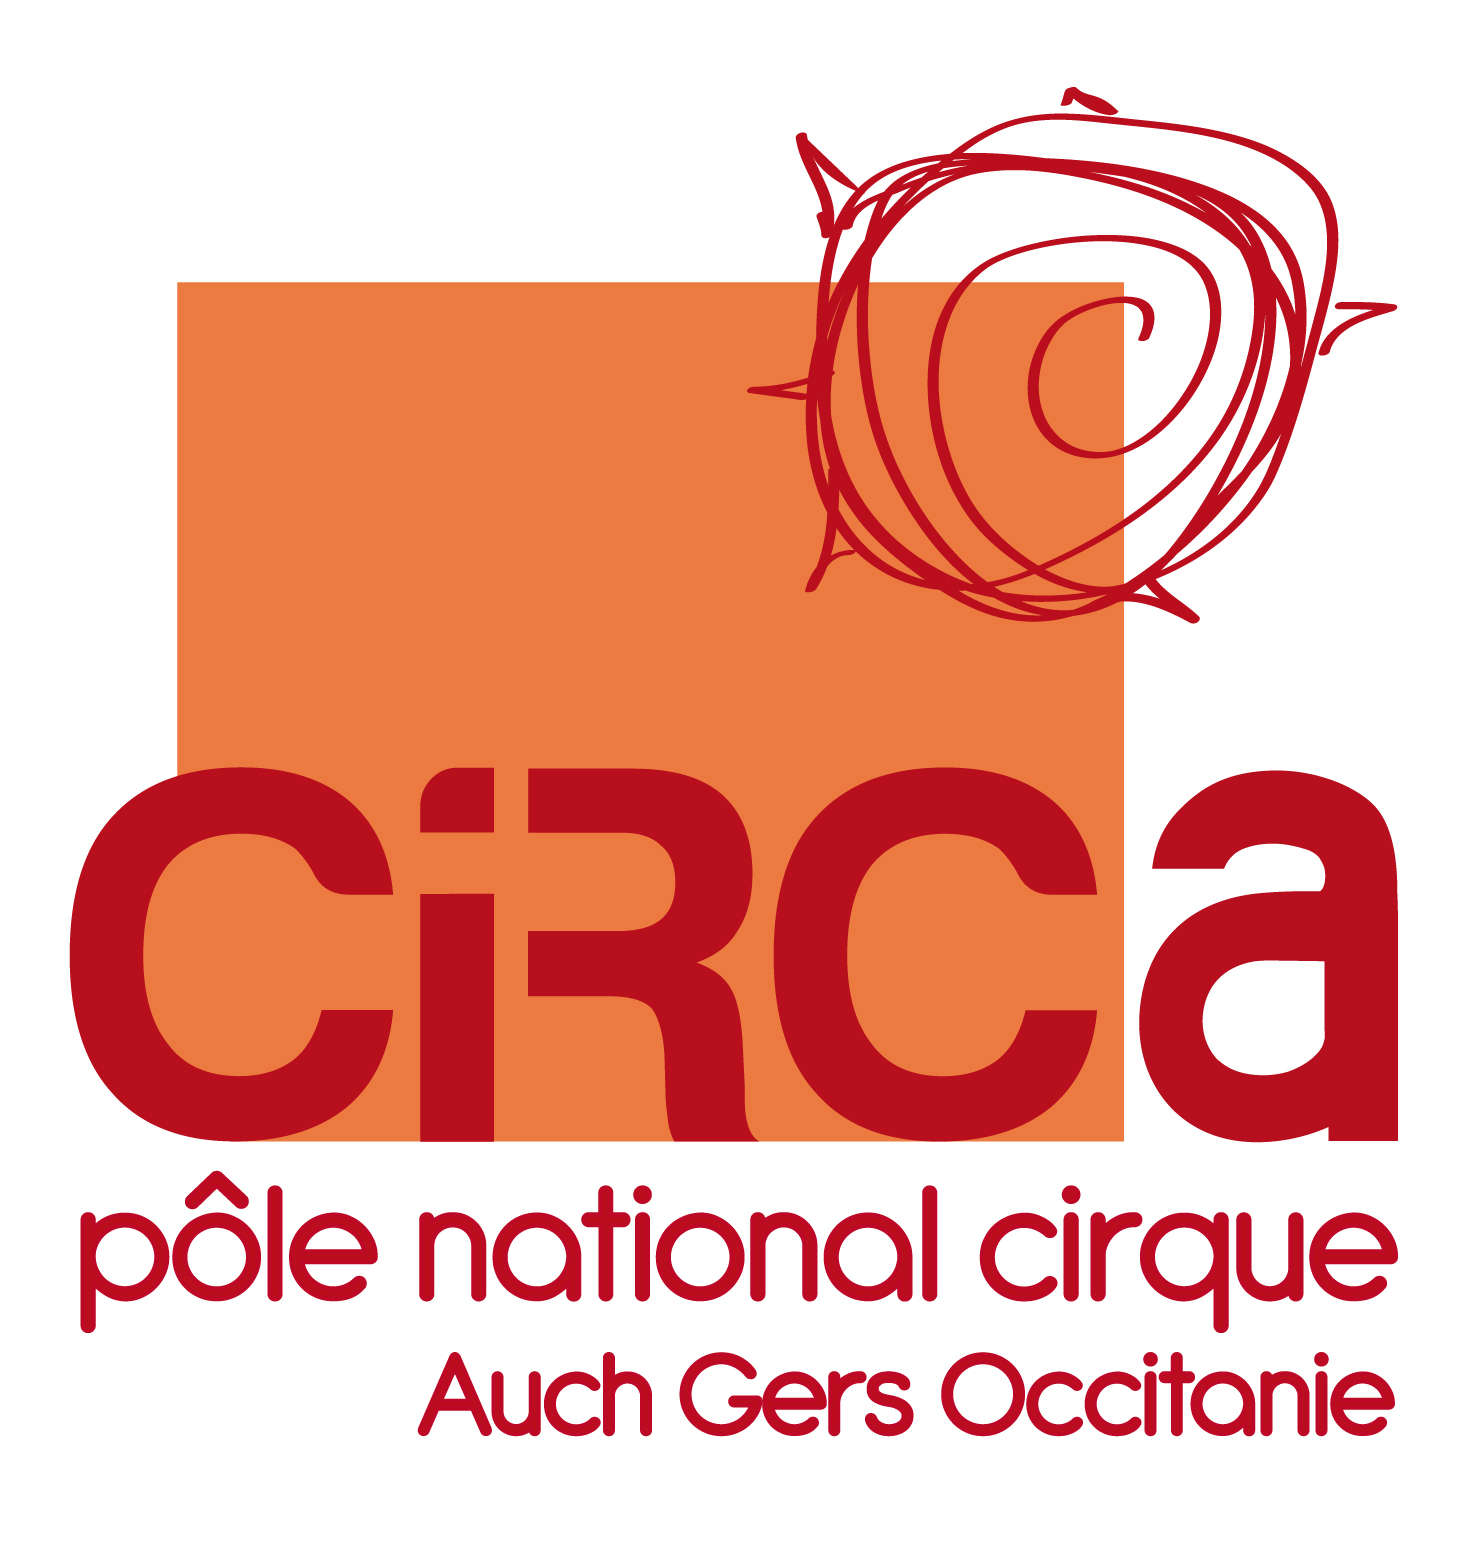 circa pole national arts cirque auch